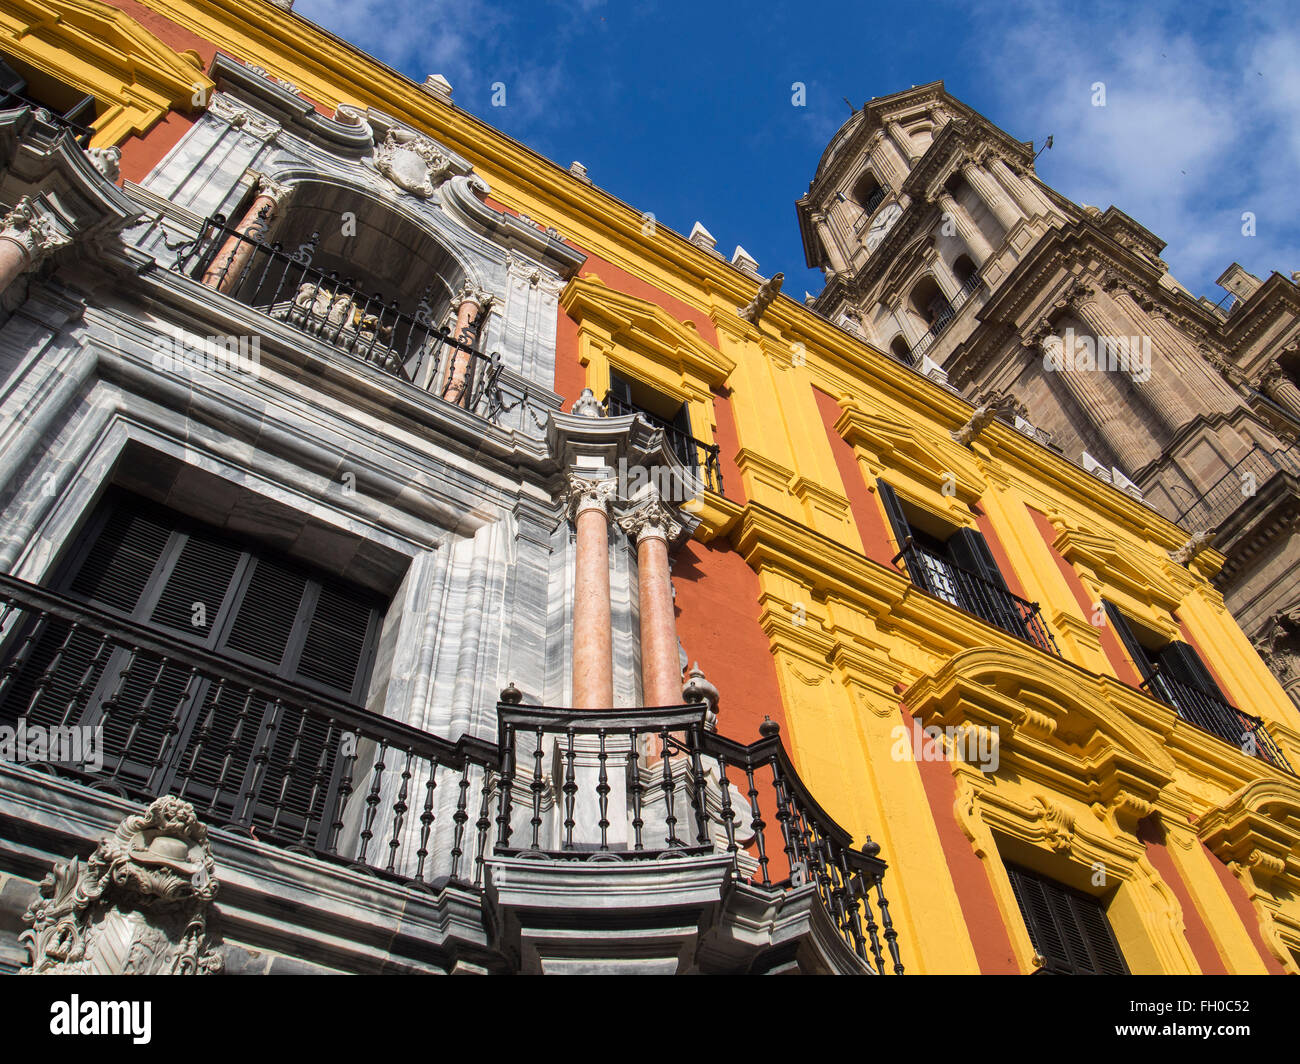 Episcopal Bishop Palace and Cathedral, Malaga city Costa del Sol. Andalusia southern Spain - Stock Image